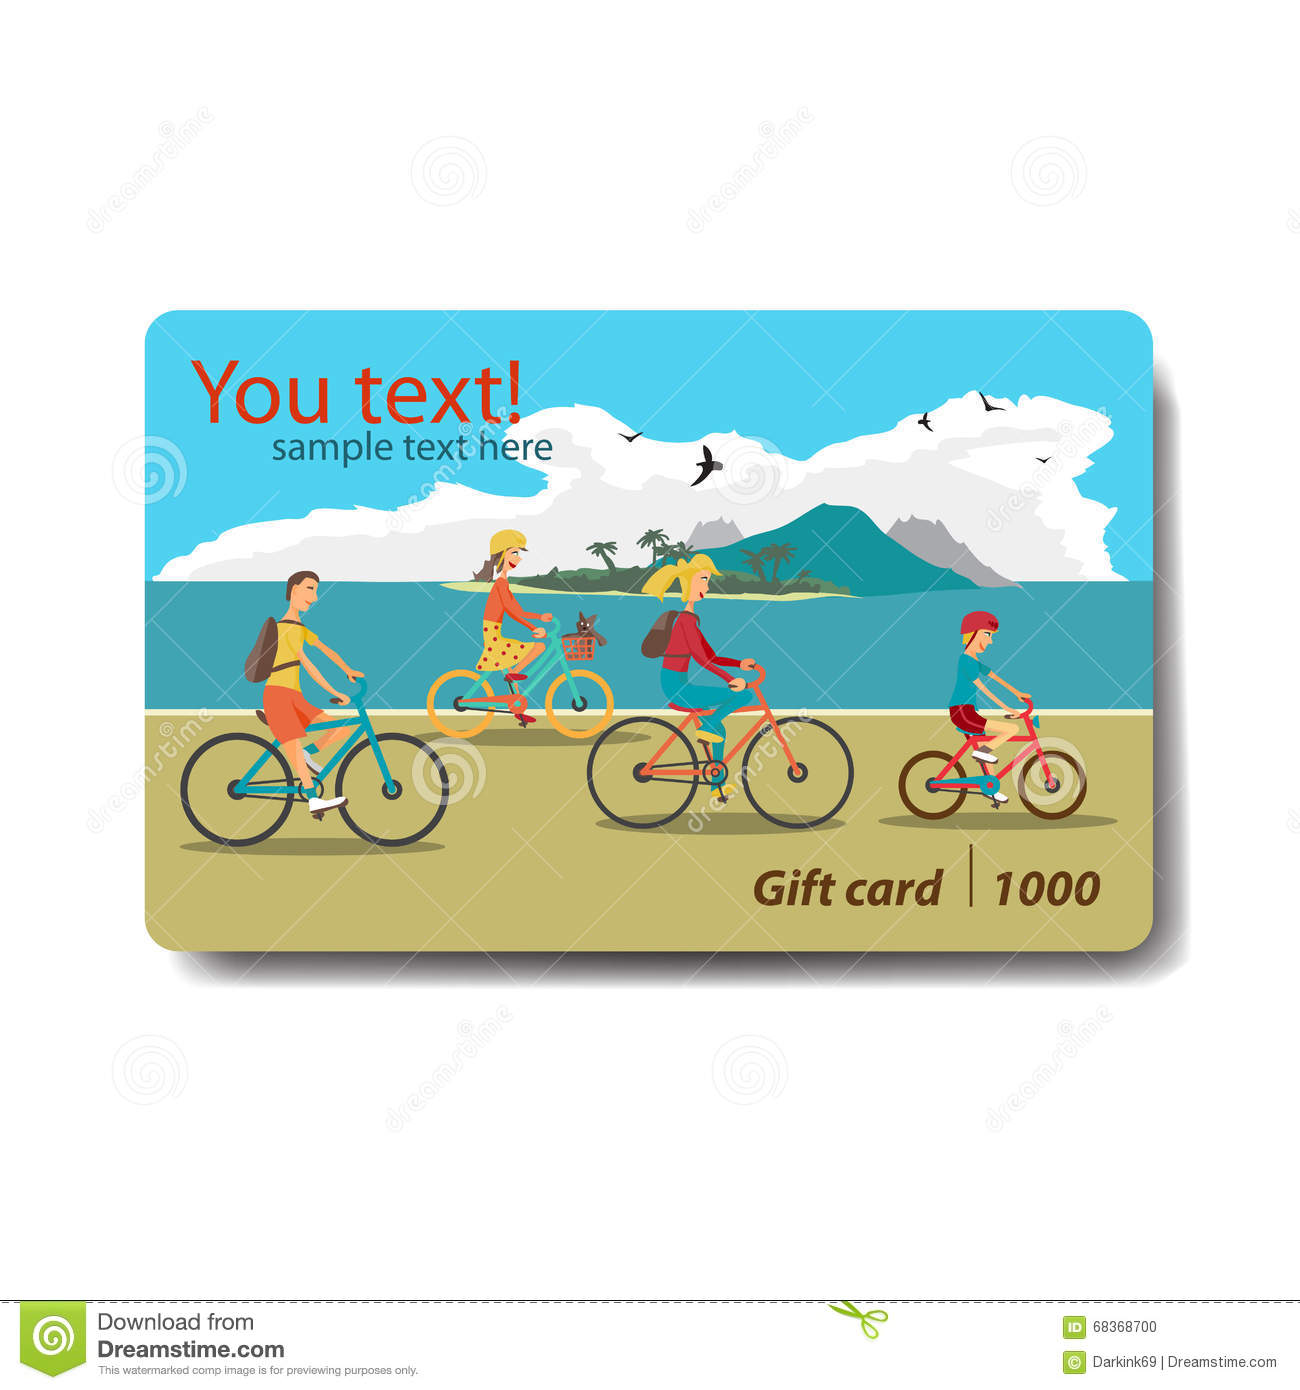 Design of discount card - Summer Sale Discount Gift Card Branding Design For Travel Stock Photo